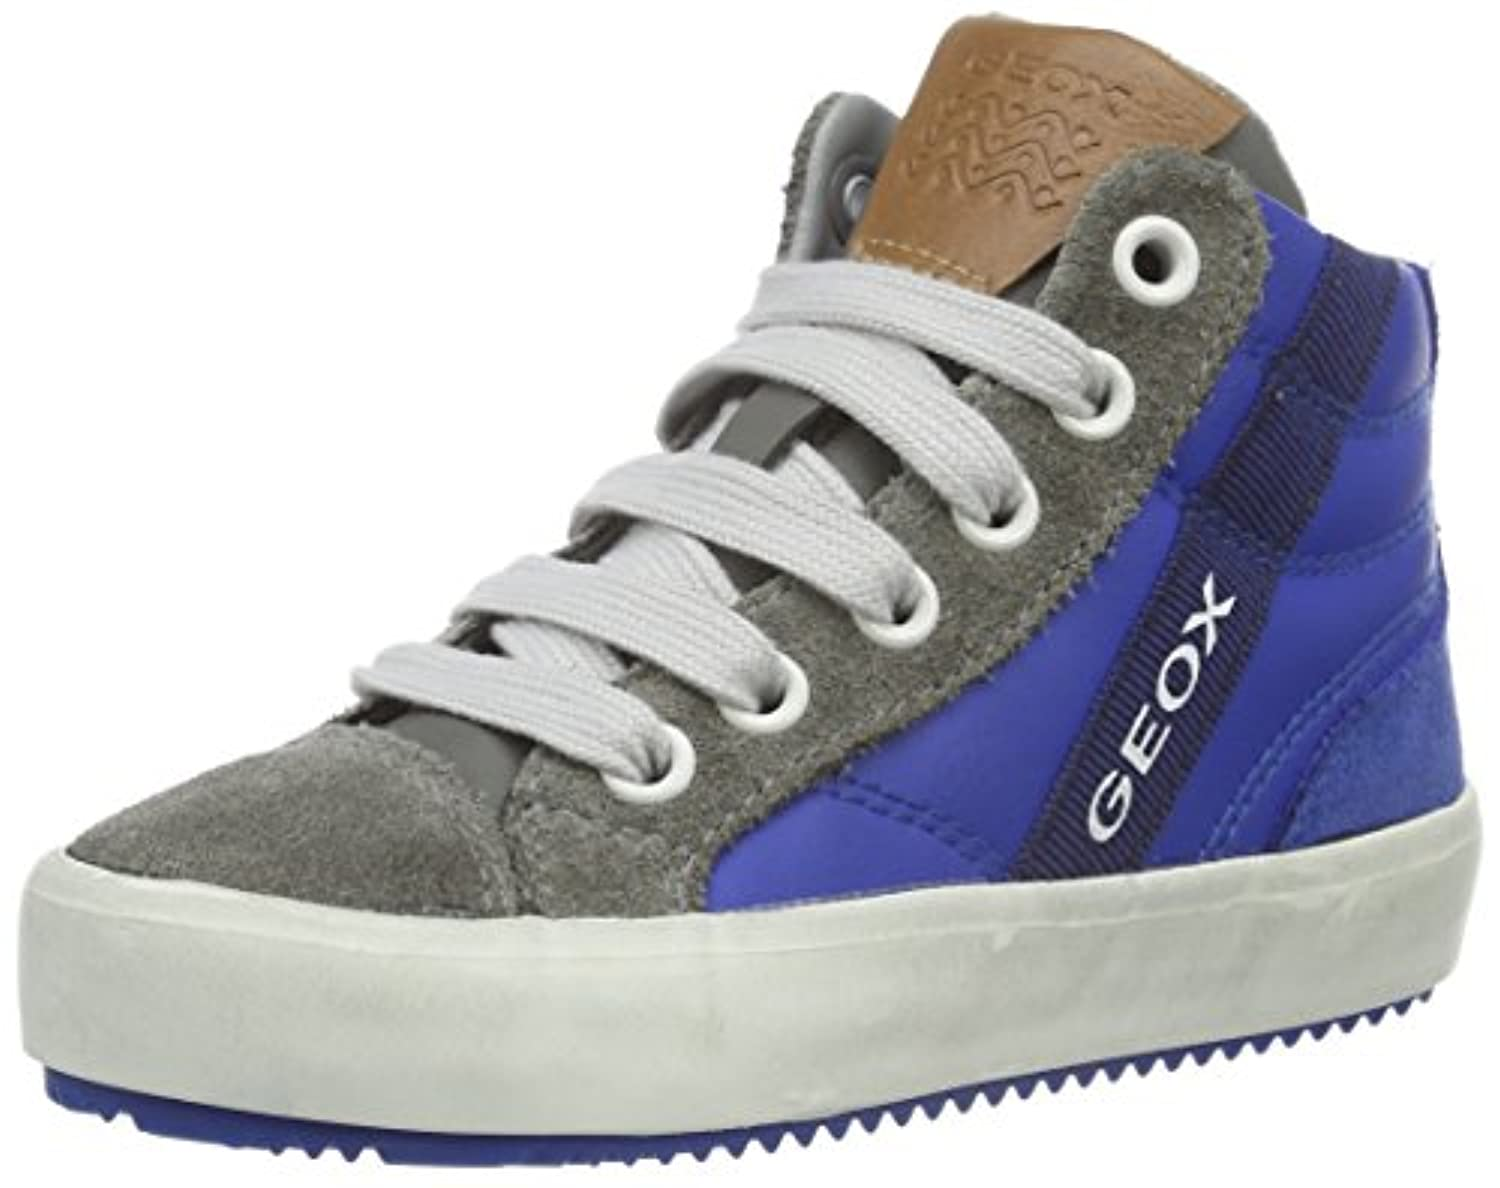 Geox J ALONISSO BOY B, Boys' Hi-Top Sneakers, Blue (ROYAL/GREYC0095), 7 Child  UK (24 EU)